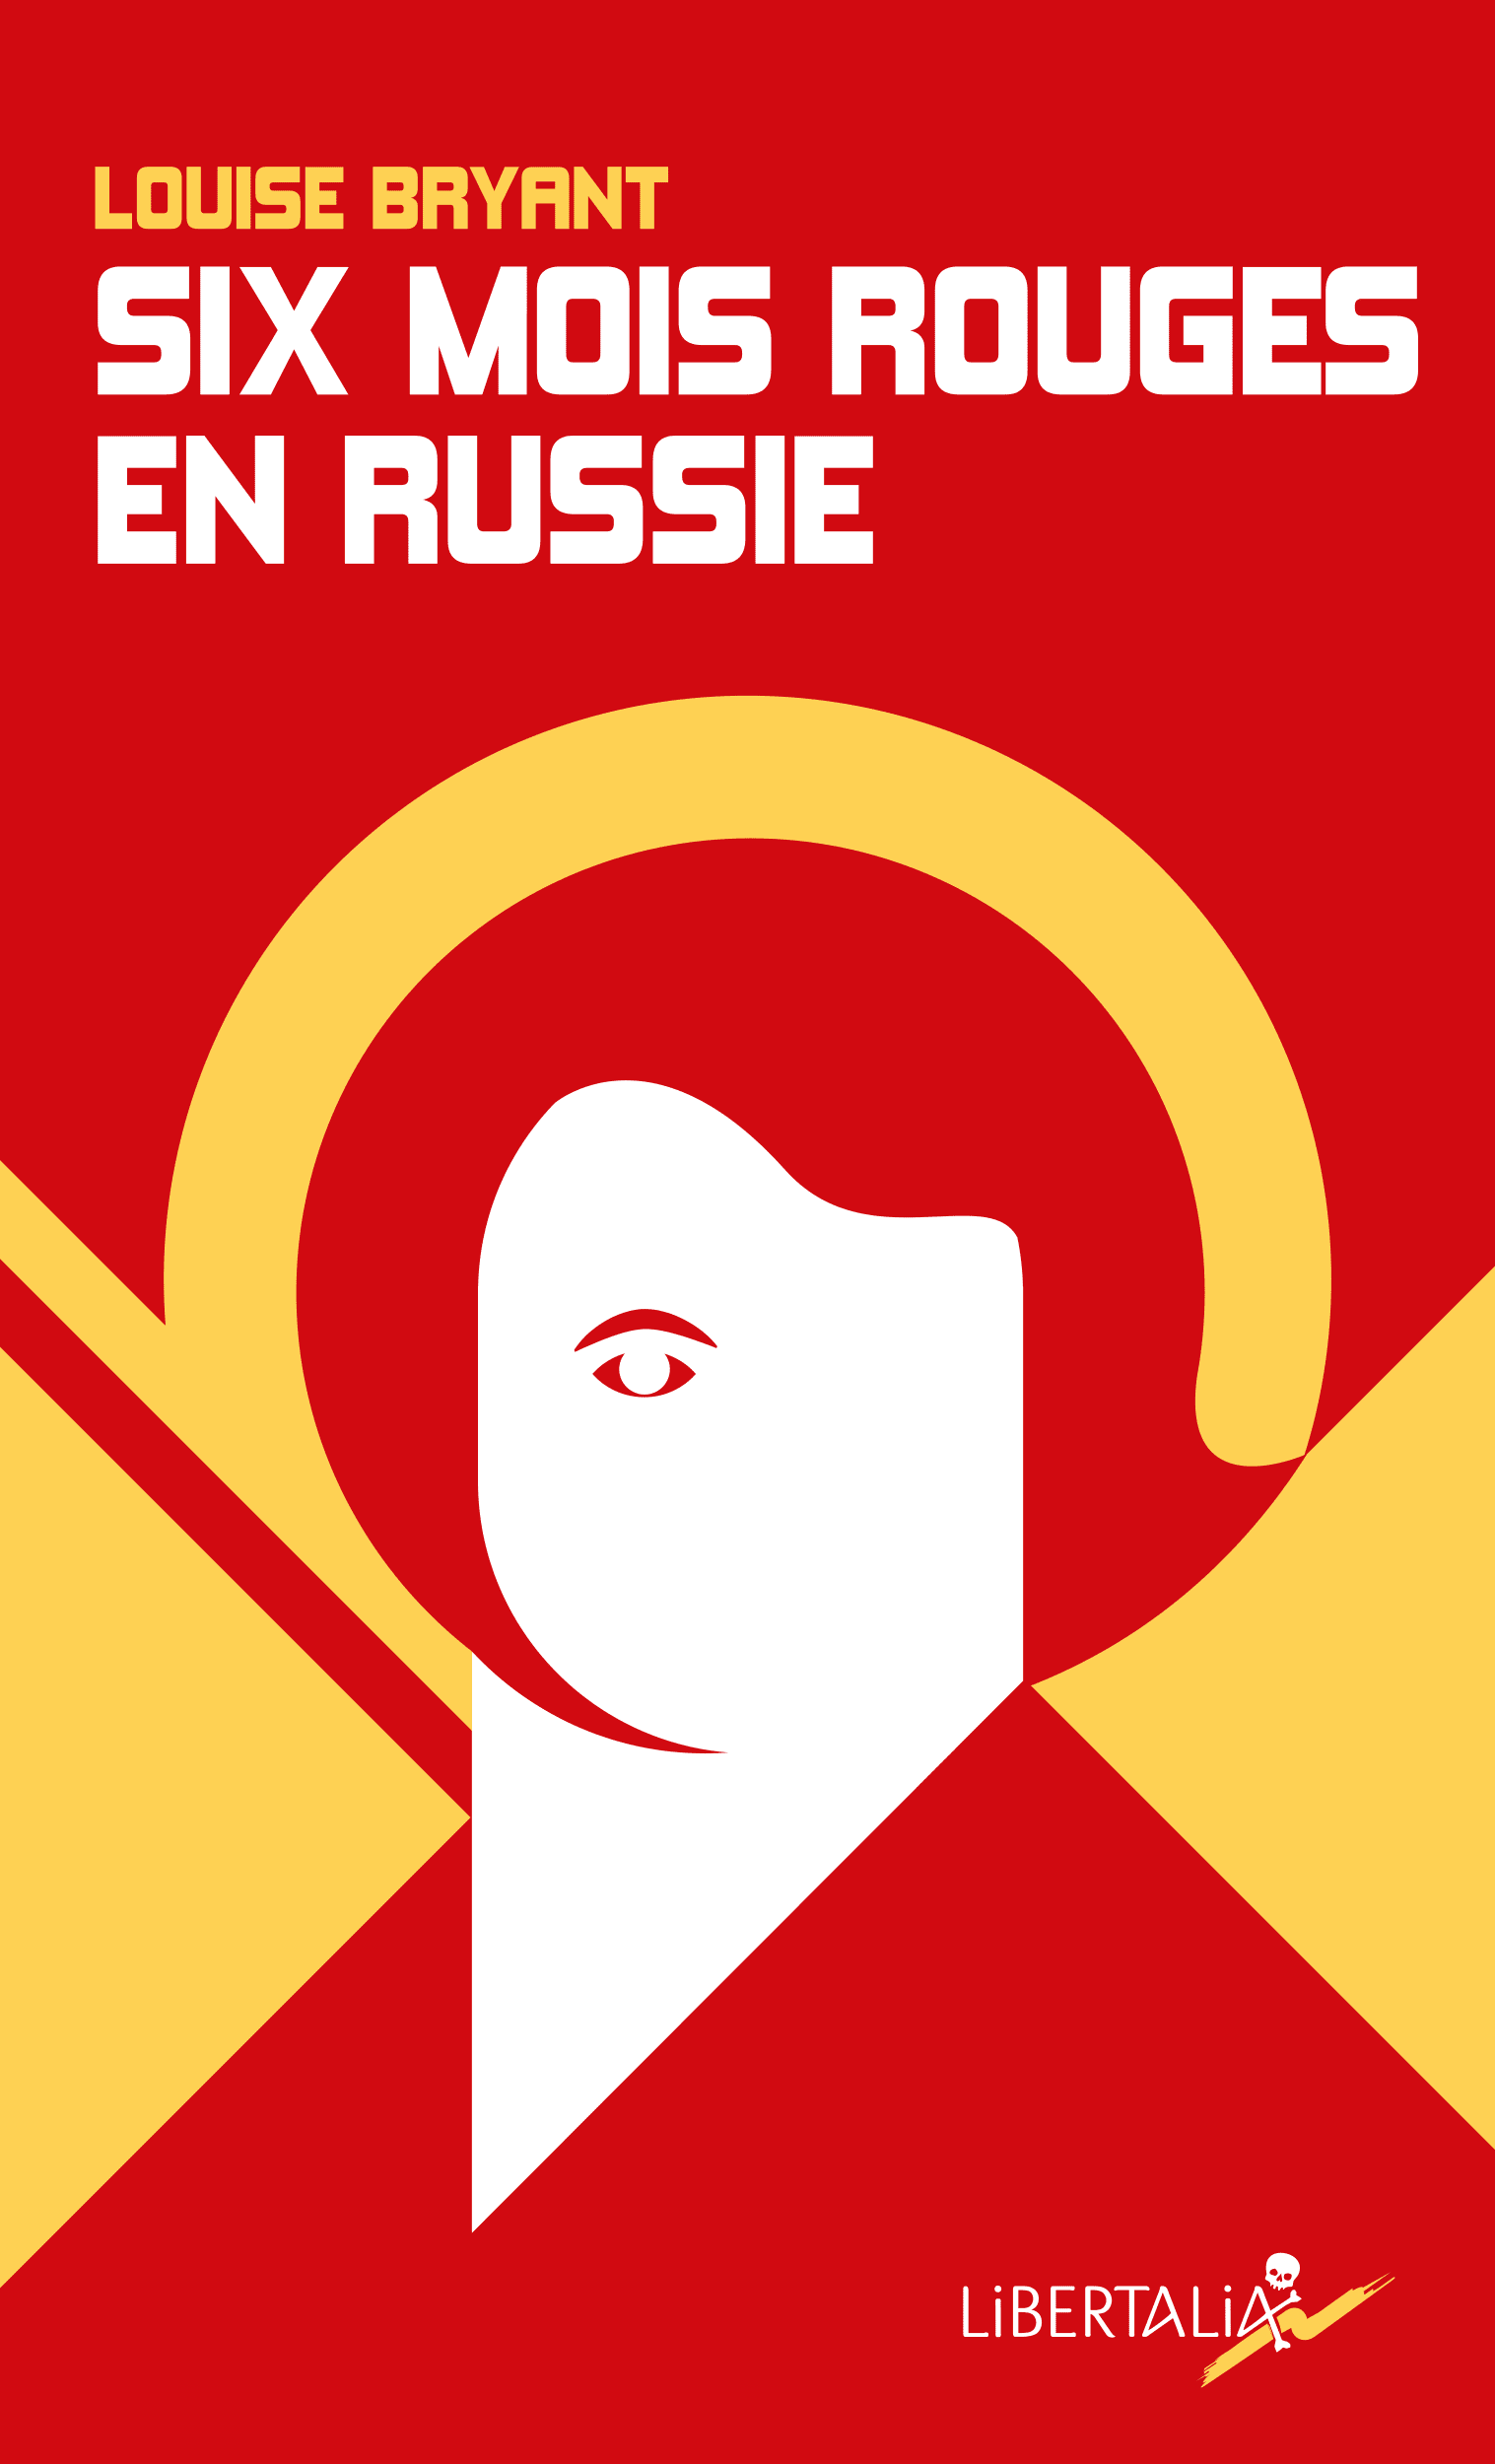 Six mois rouges en Russie par Bruno Bartkowiak, graphiste illustrateur en Ariège, Occitanie.